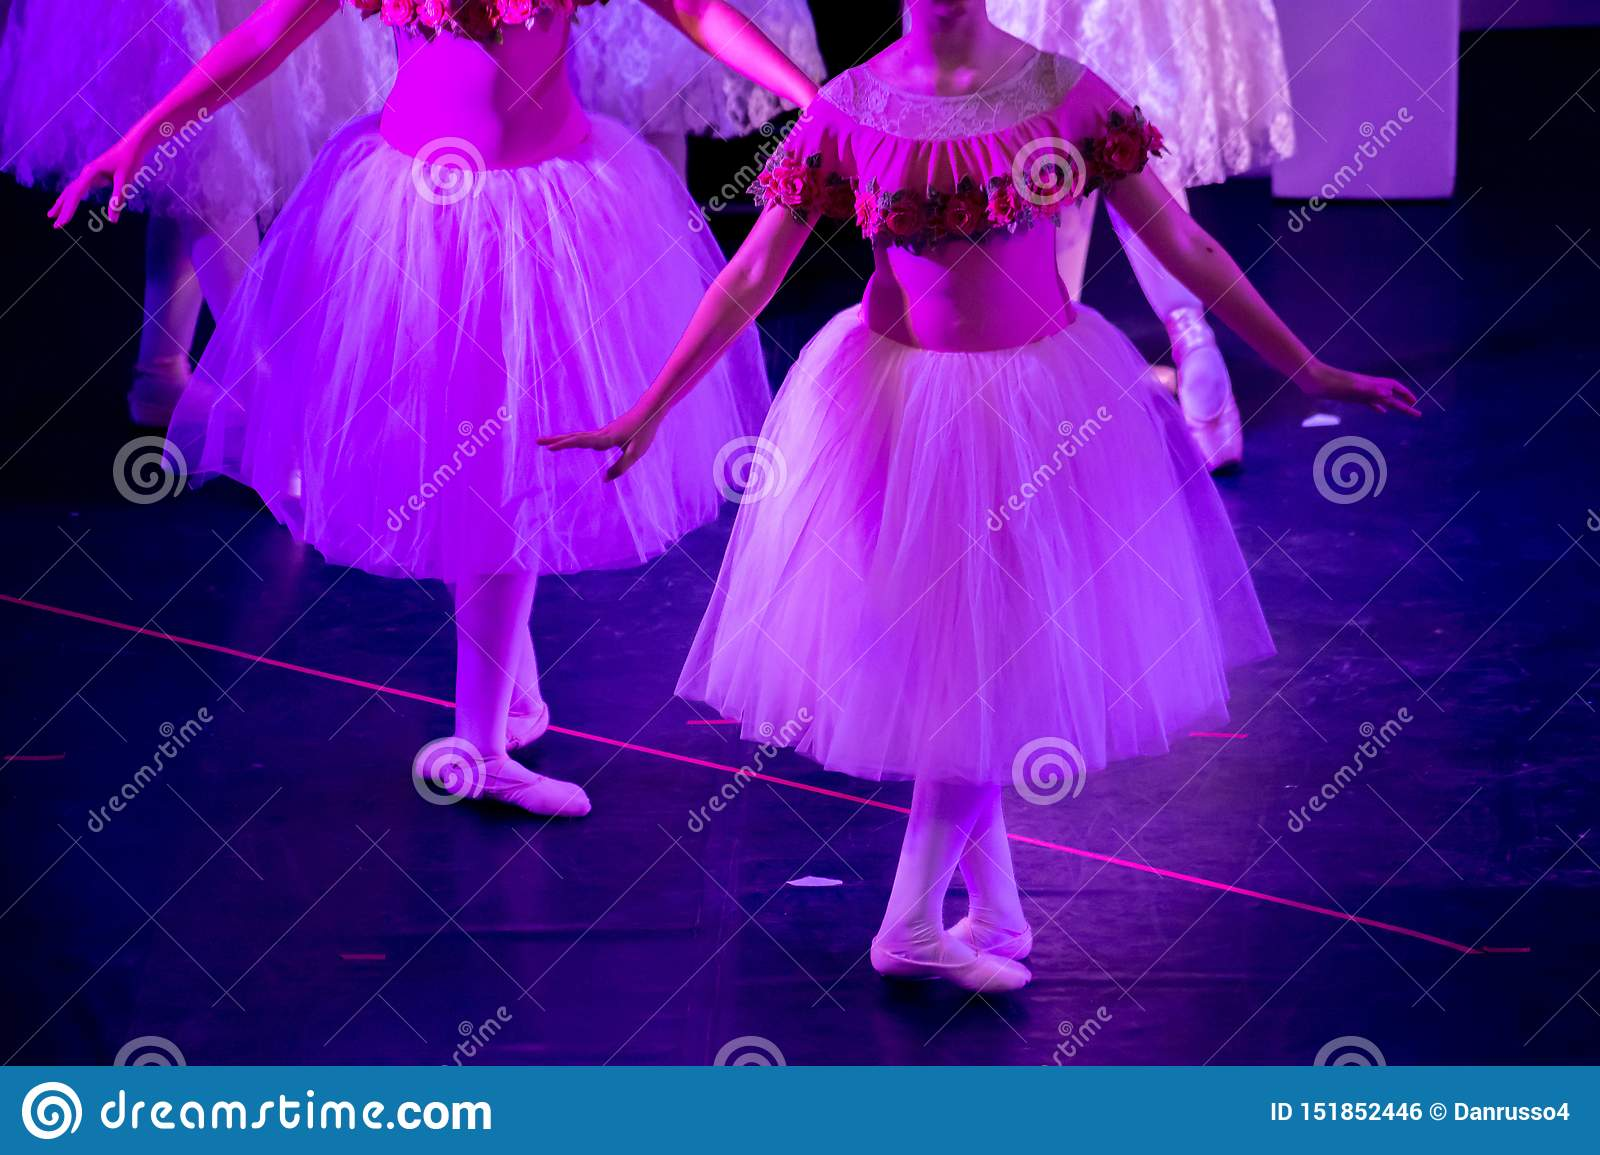 Ballet Dancers under Purple Light with Classical Dresses performing a ballet on Blur Background